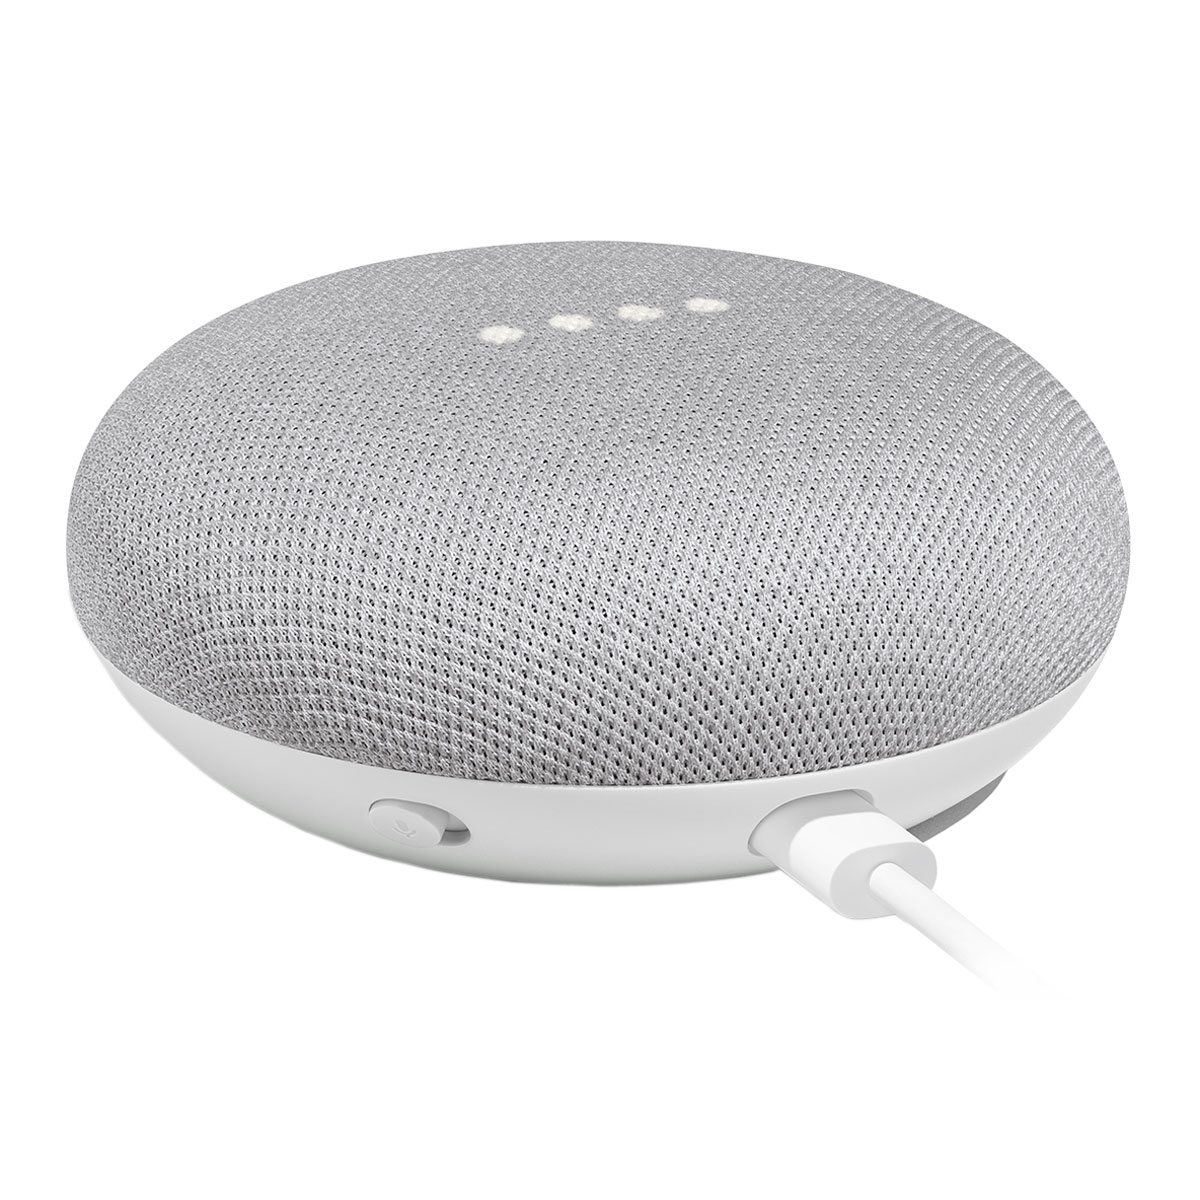 google home mini dock enceinte bluetooth google sur. Black Bedroom Furniture Sets. Home Design Ideas